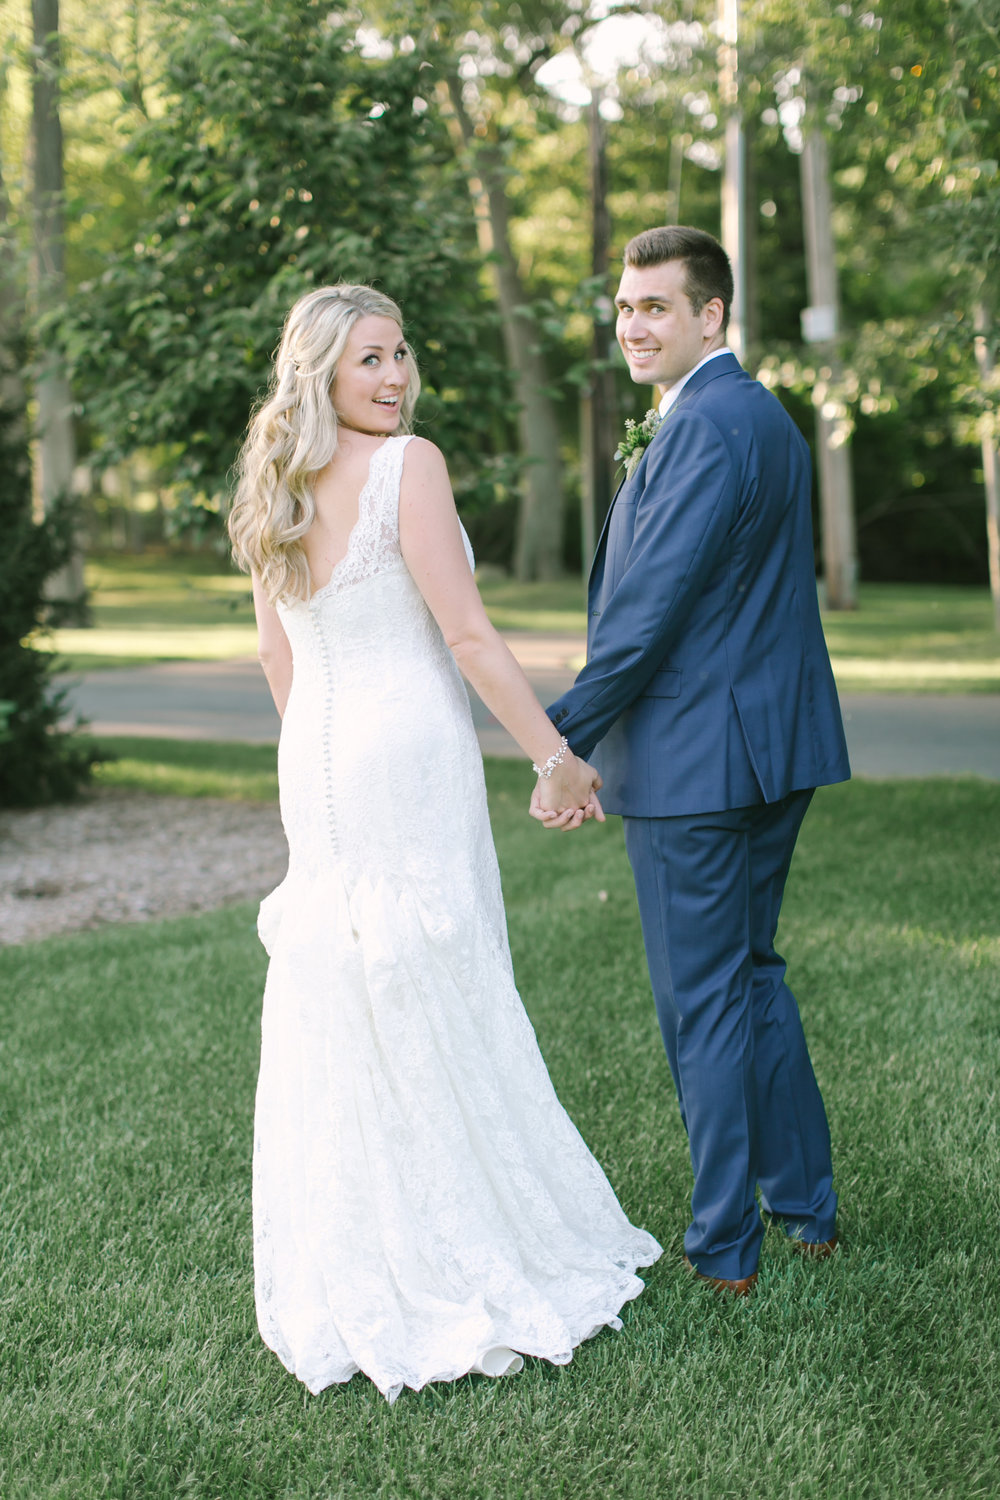 Love&LightPhotographs_Kate&Eli_Wedding_Preview-42.jpg